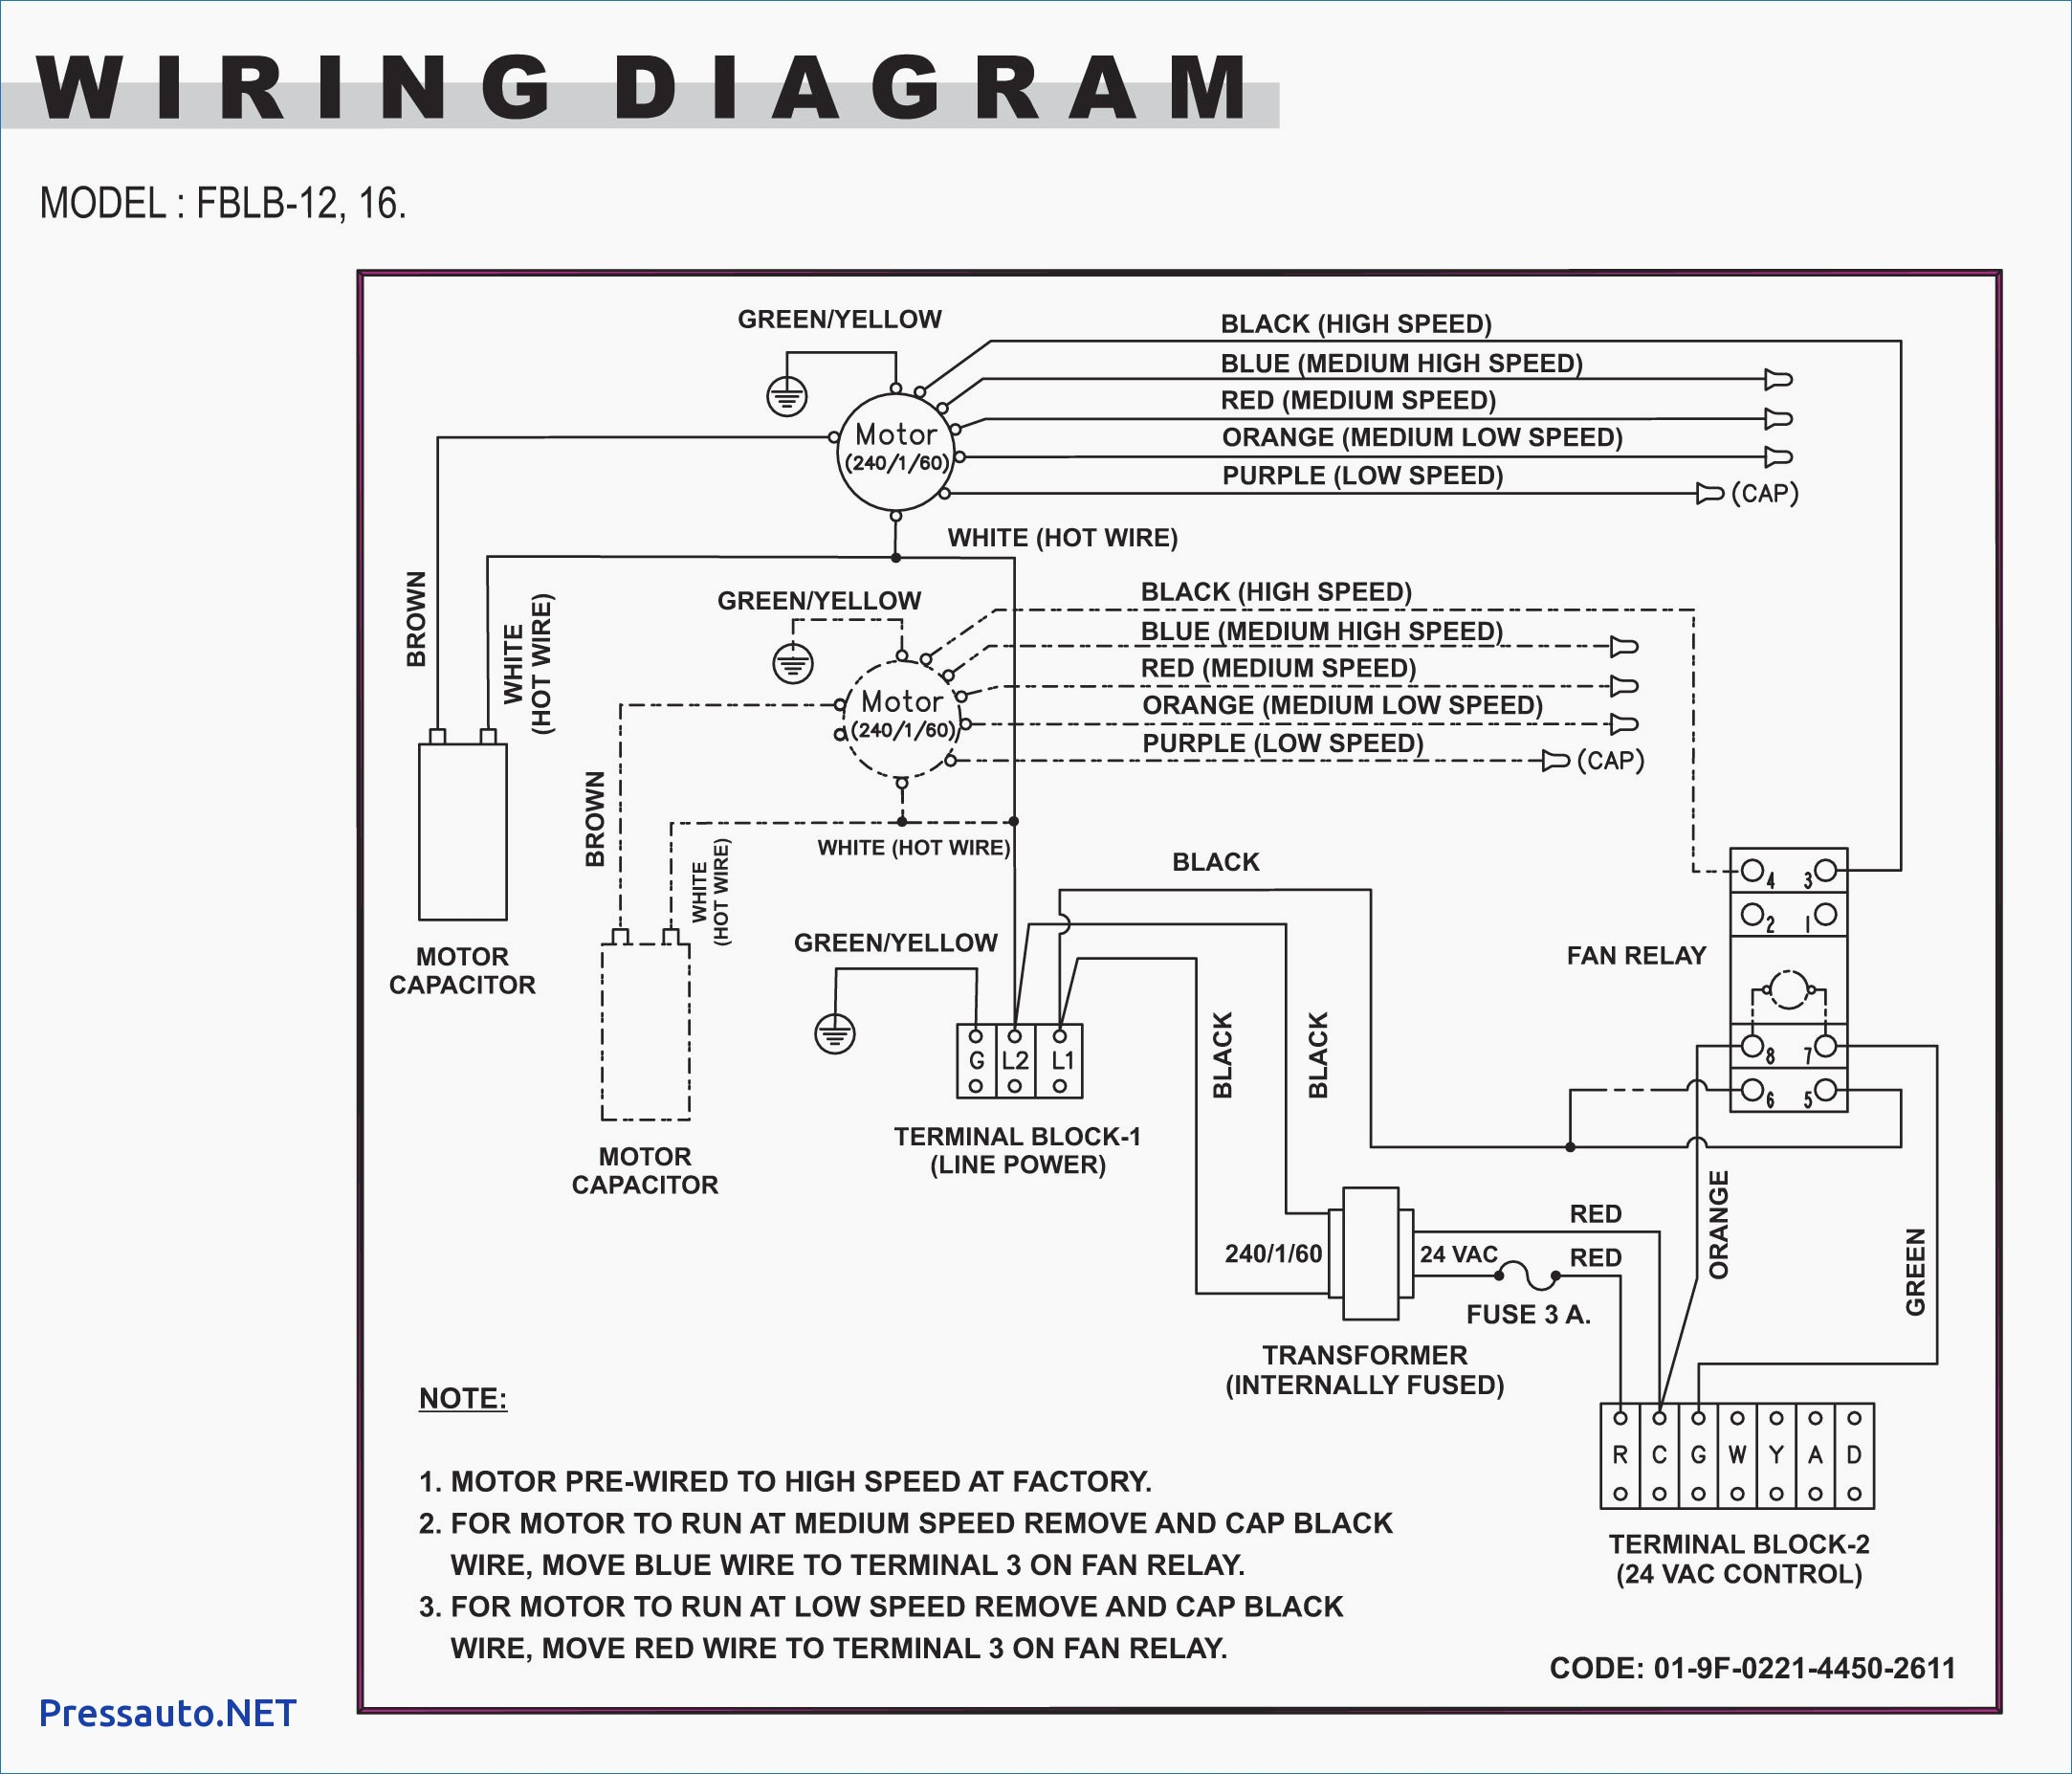 Wiring A Electric Space Heater - Wiring Diagram Data on 3 phase wiring diagram wires, 3 phase breaker panel wiring, 3 phase motor wiring diagram, 3 phase single phase transformer wiring, 3 phase oven wiring diagram, 3 phase to single phase wiring diagram, 3 phase lighting wiring diagram, 3 phase delta wiring diagram, 3 phase heating element connections, 3 phase electrical wiring diagram, 120 208 3 phase wiring diagram,